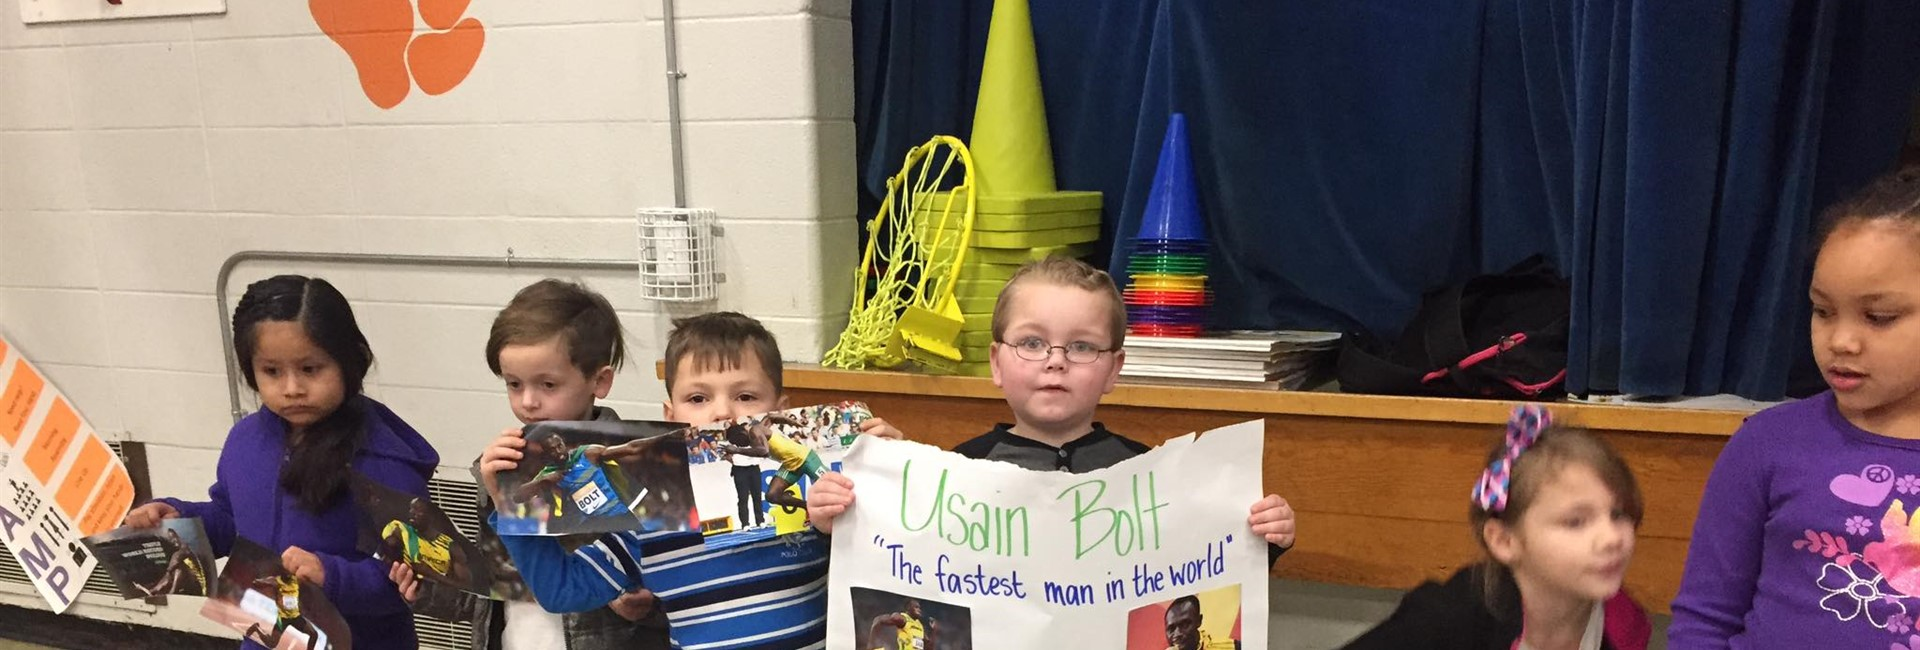 The first grade class of Ms. Hall does a presentation on Usain Bolt, Olympic sprinter, for Black History Month.